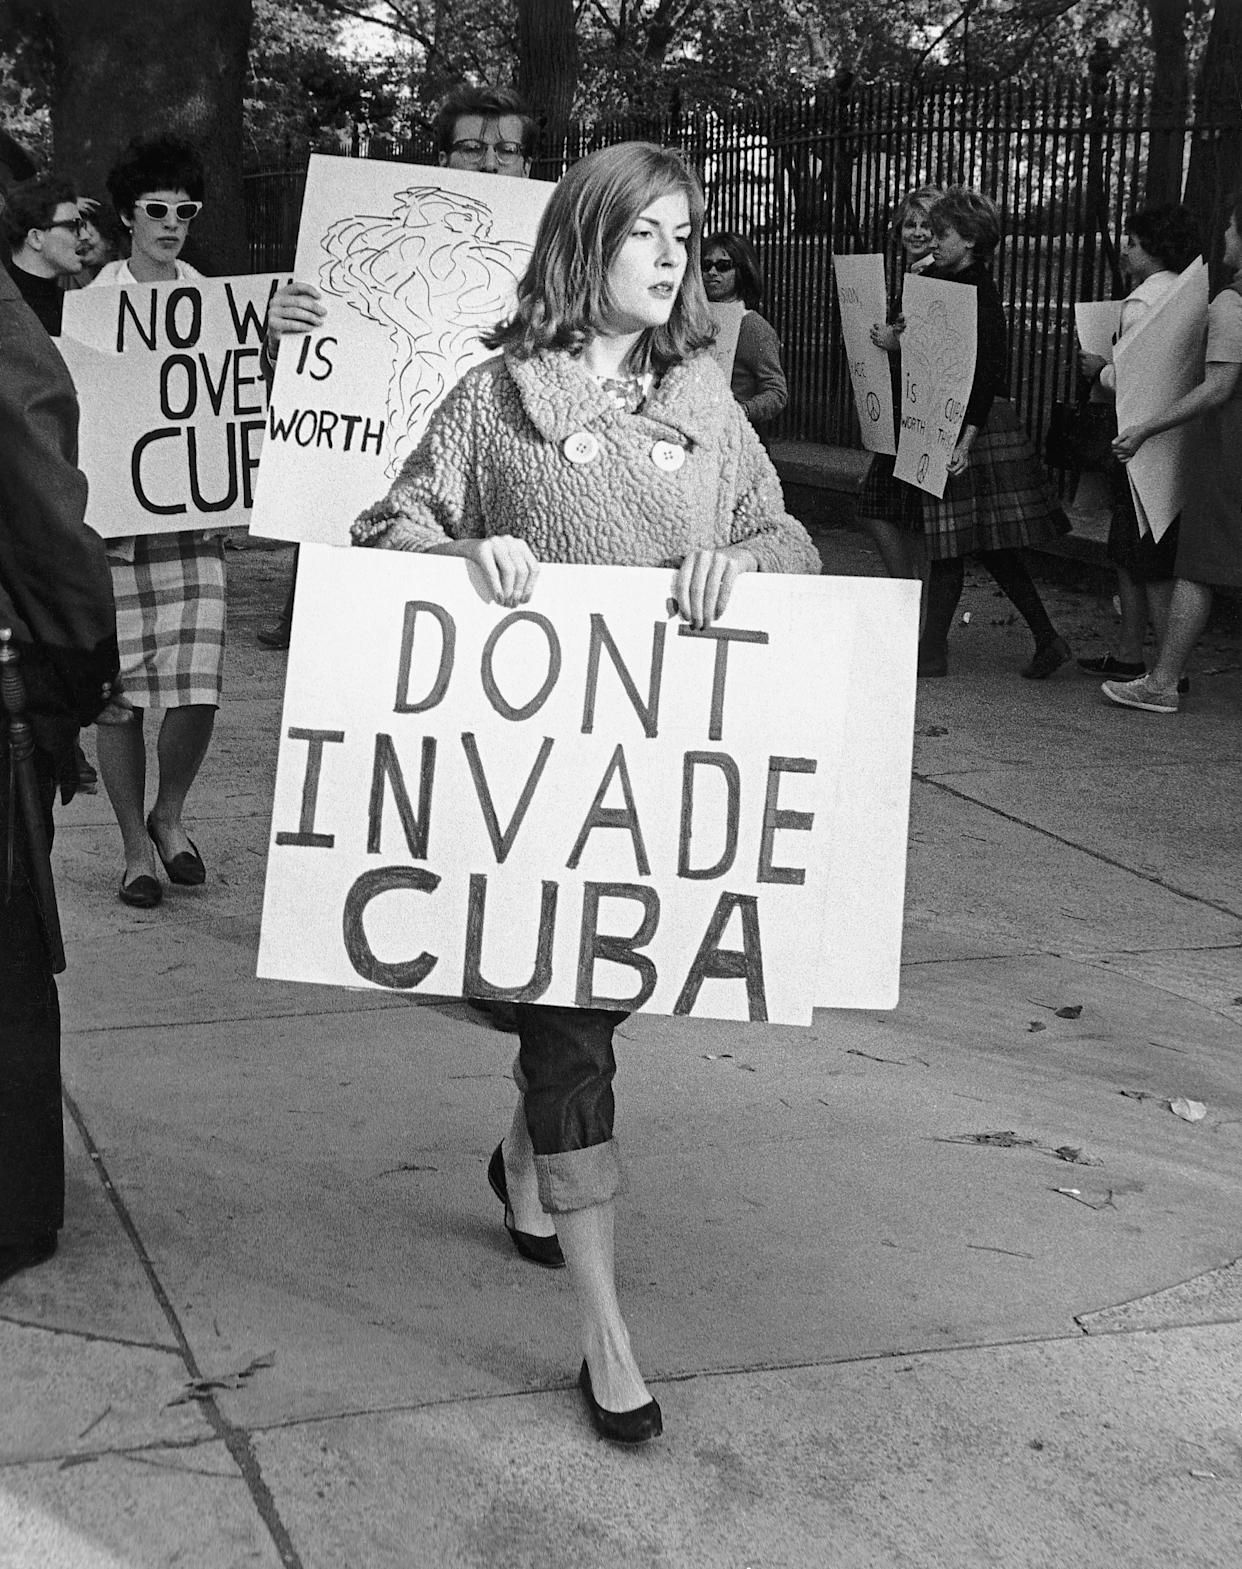 Picture shows people picketing outside of the White House in protest of the US involvement with Cuba. The woman in the foreground is holding a sign plainly stating her point, 'Don't invade Cuba'. Undated photo circa 1960s.